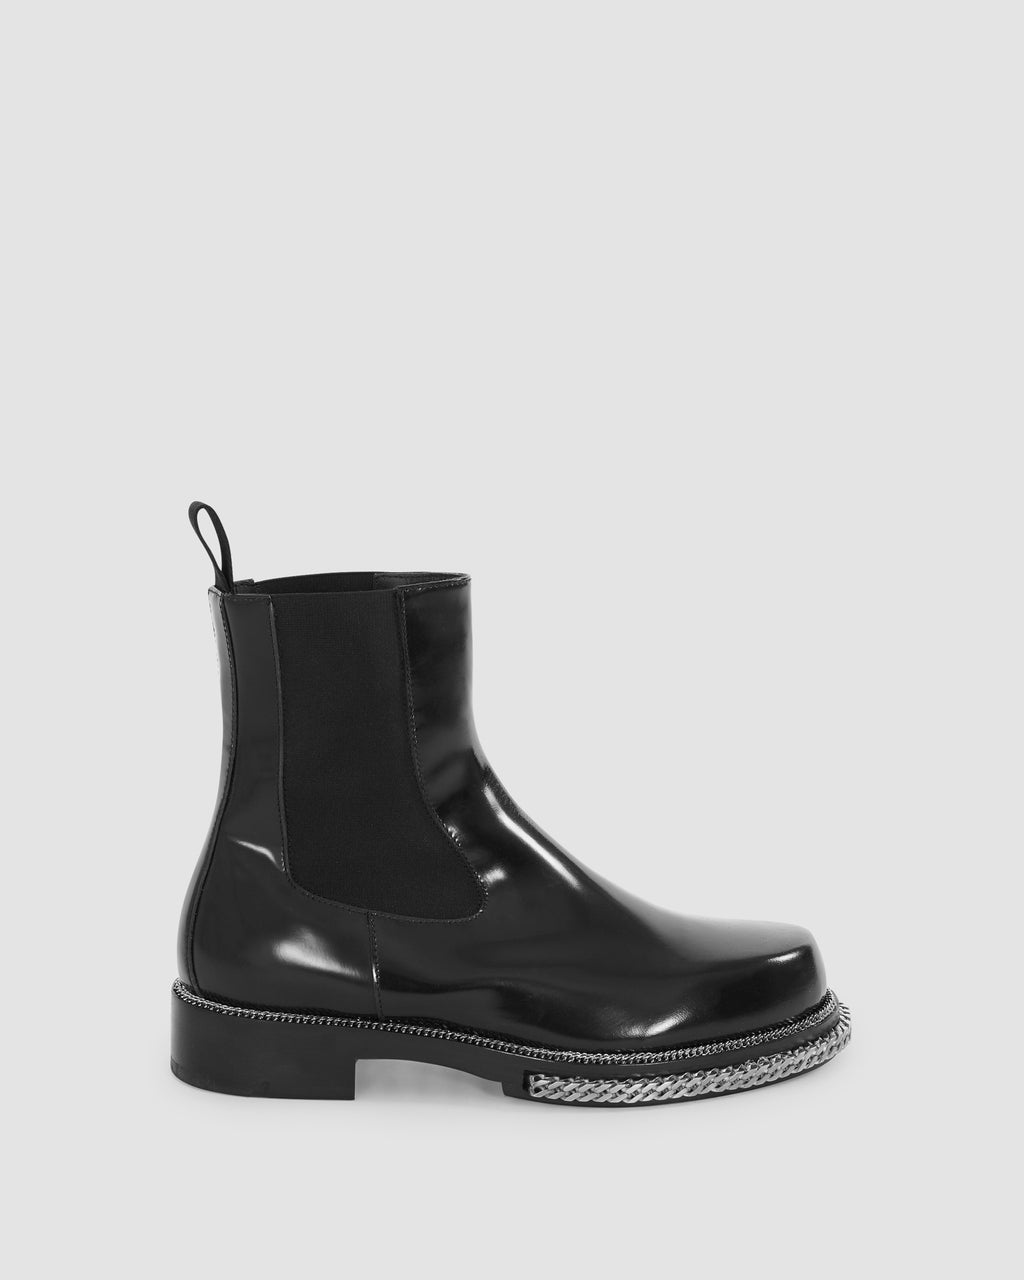 CHELSEA BOOT WITH CHAIN SOLE EXCLUSIVE MADE TO ORDER